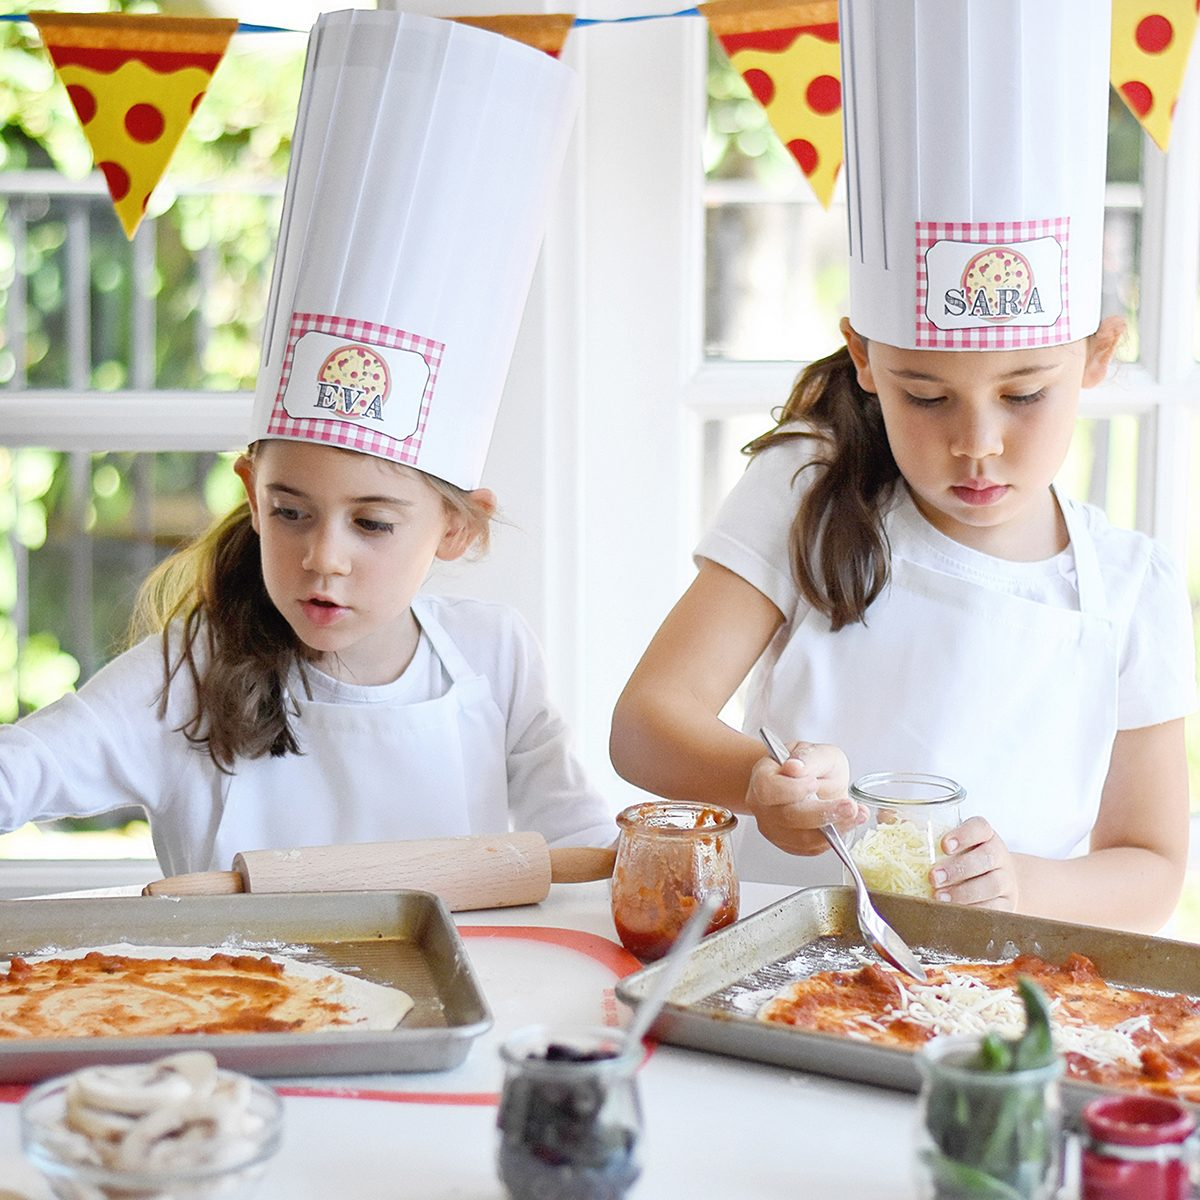 young girls making pizza for Pizza birthday party ideas